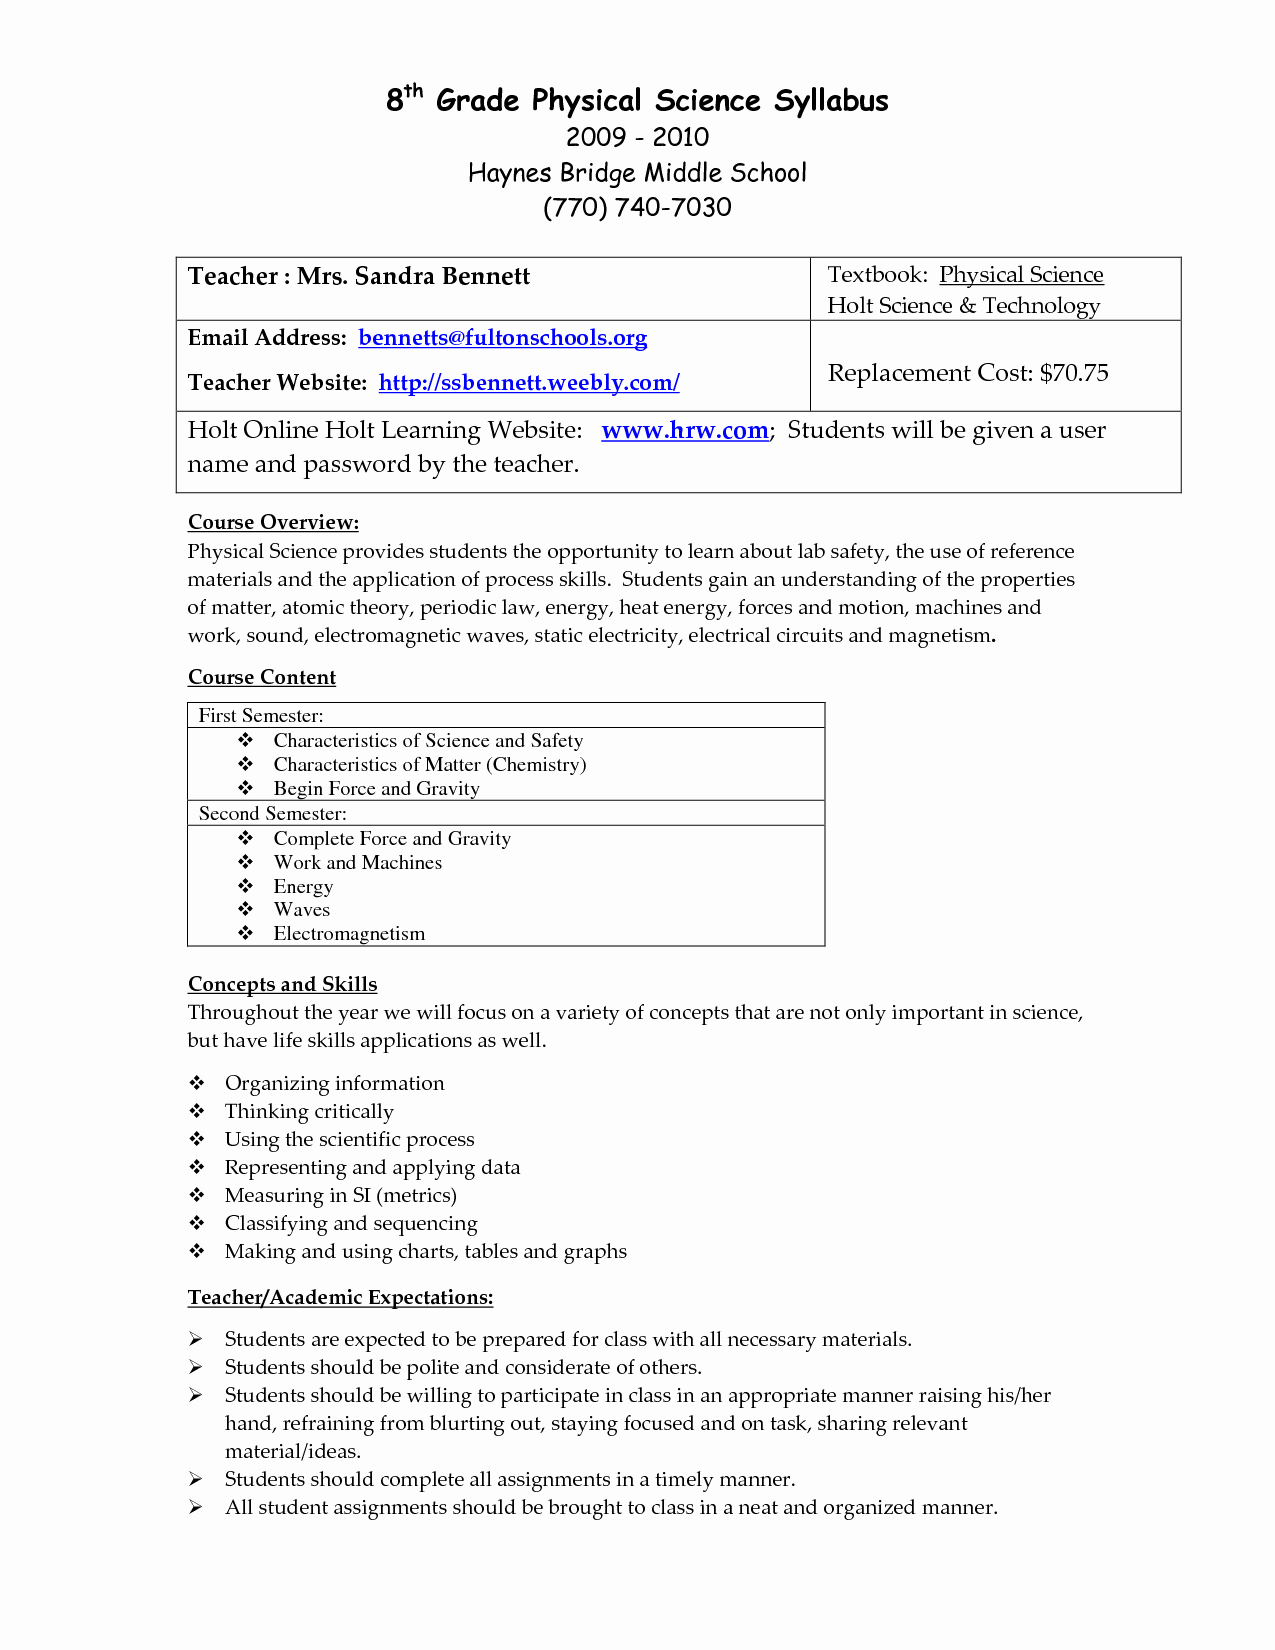 17 Free Physical Science Worksheets – Cgcprojects – Resume - 9Th Grade Science Worksheets Free Printable